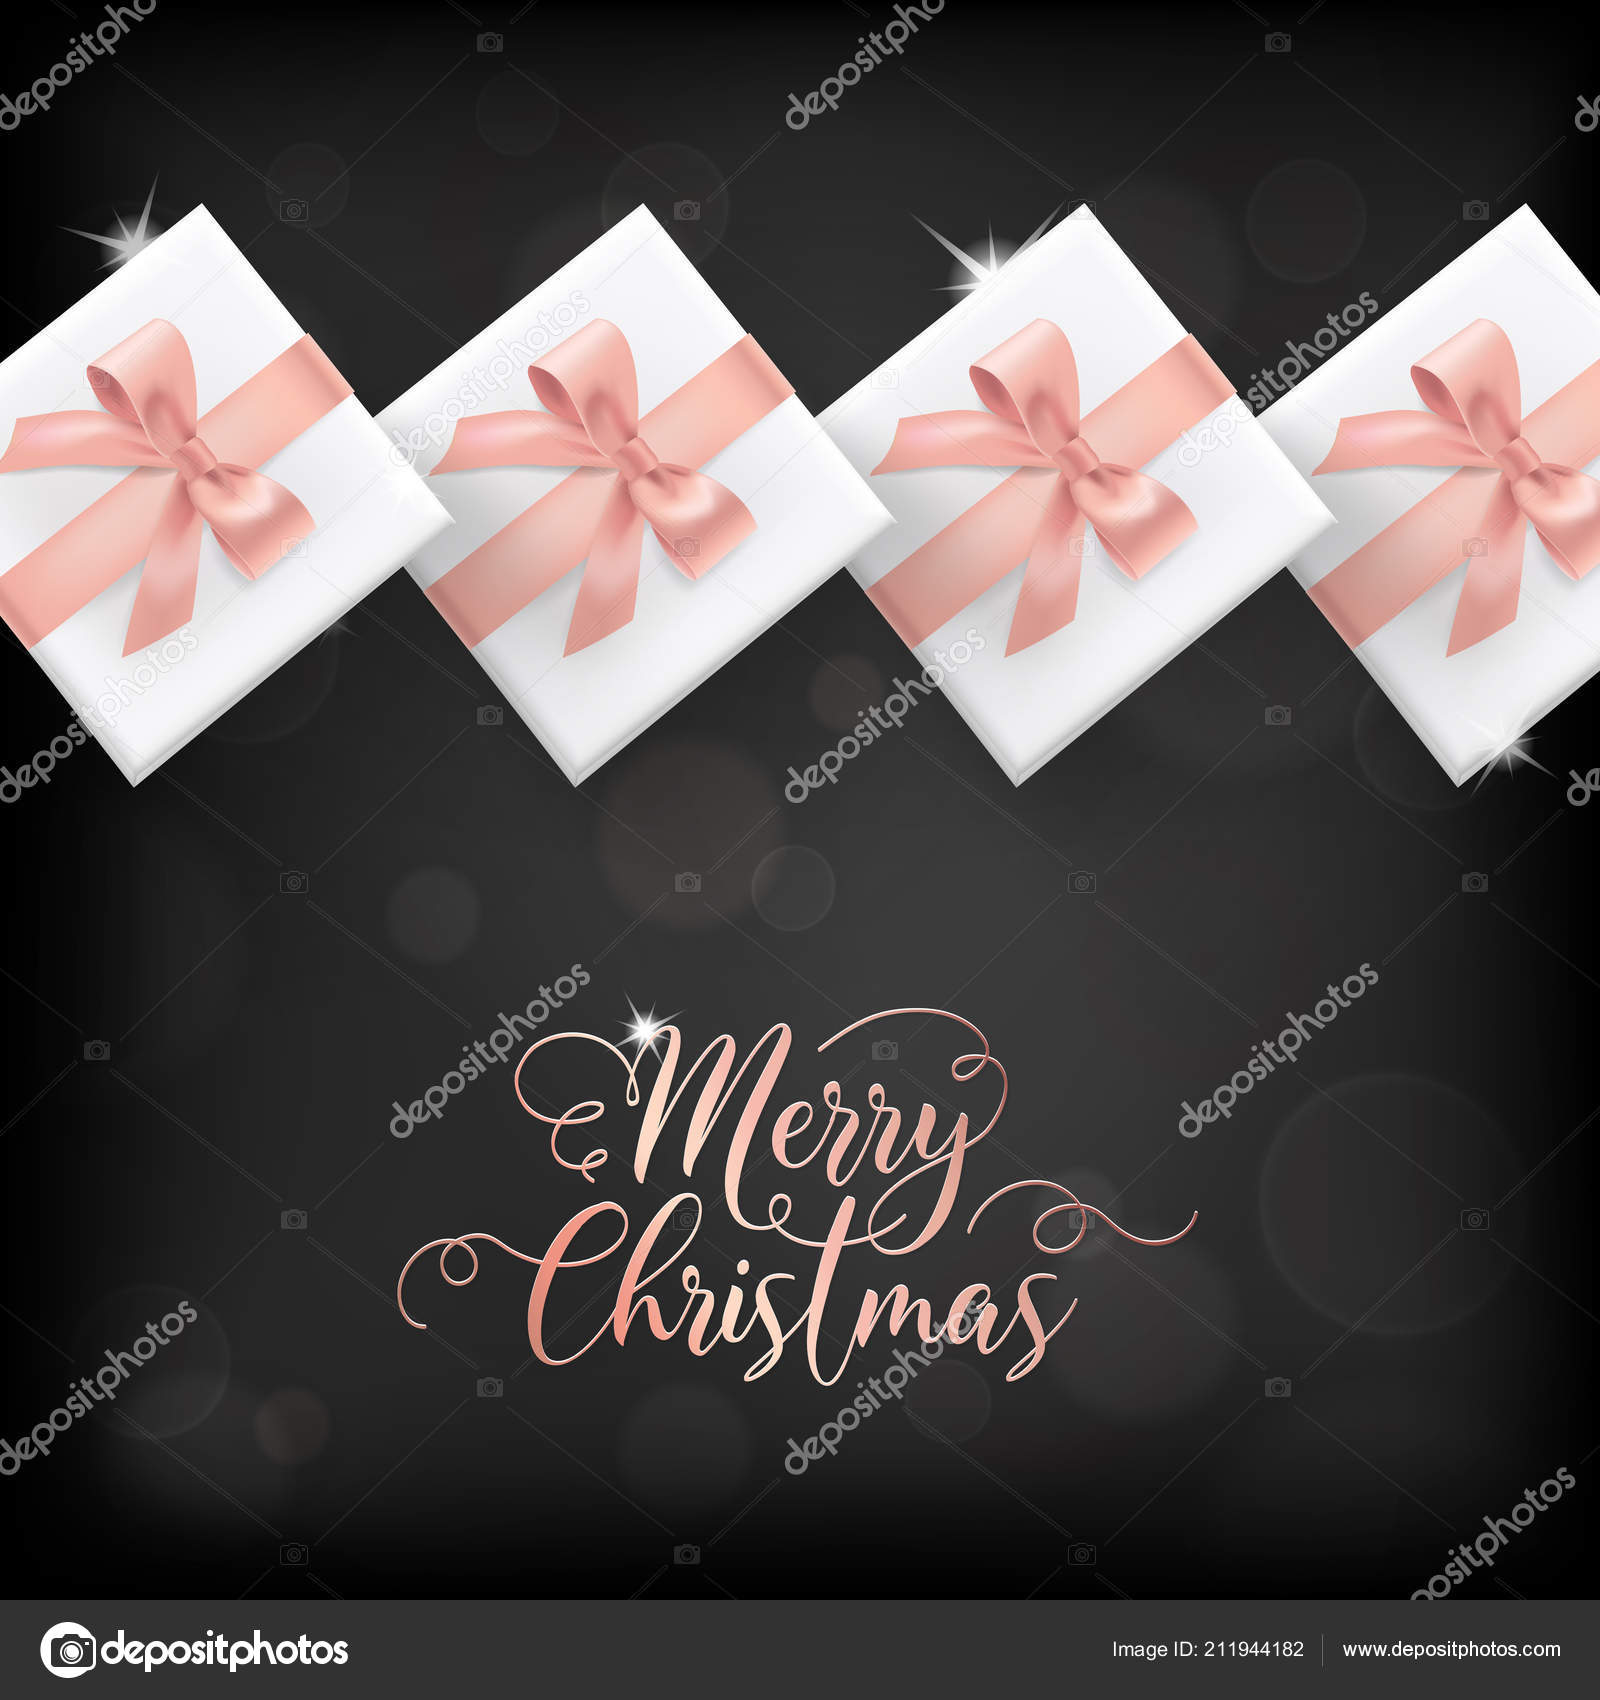 Elegant Merry Christmas Card With Rose Gold Christmas Presents And